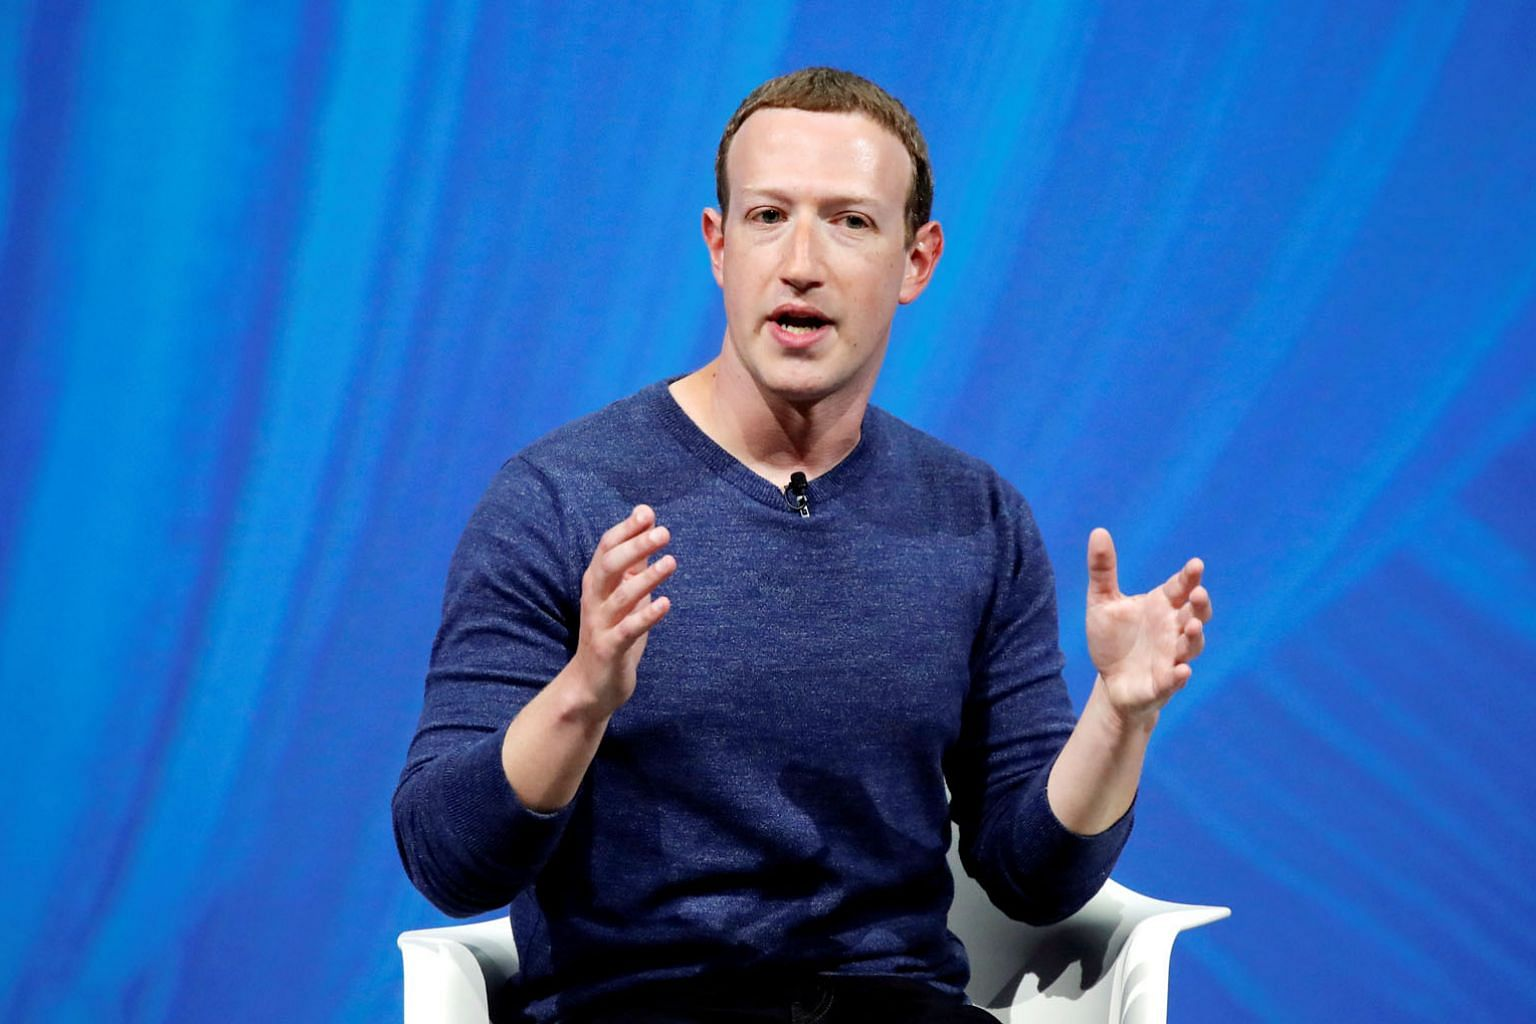 """Mr Mark Zuckerberg says he has acted swiftly to combat the Russian challenge, and that he supports regulation that would encourage companies to reduce the prevalence of """"harmful content""""."""